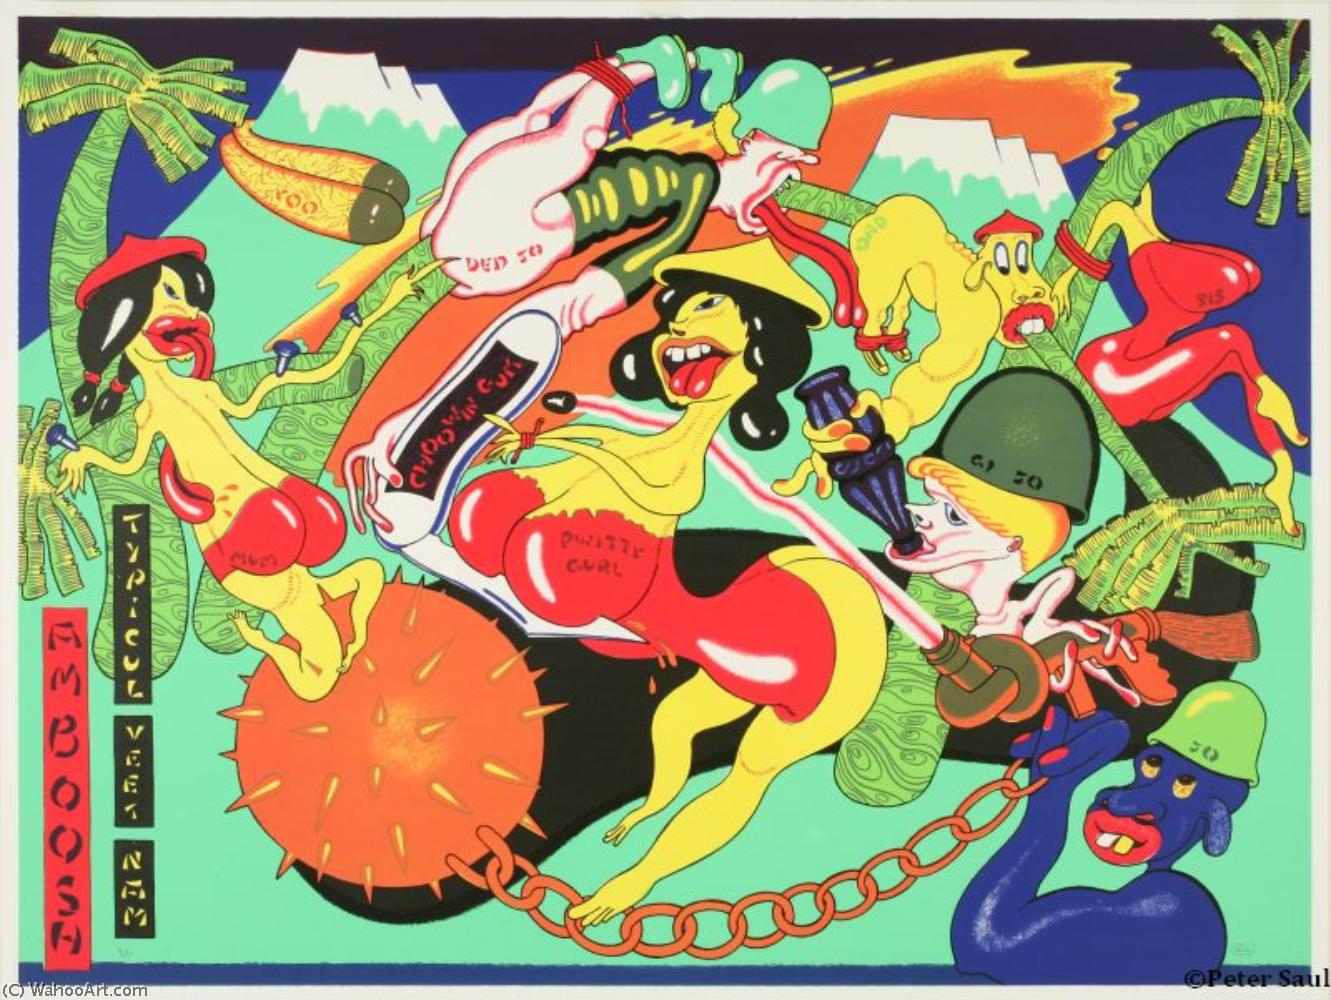 famous painting Amboosh of Peter Saul